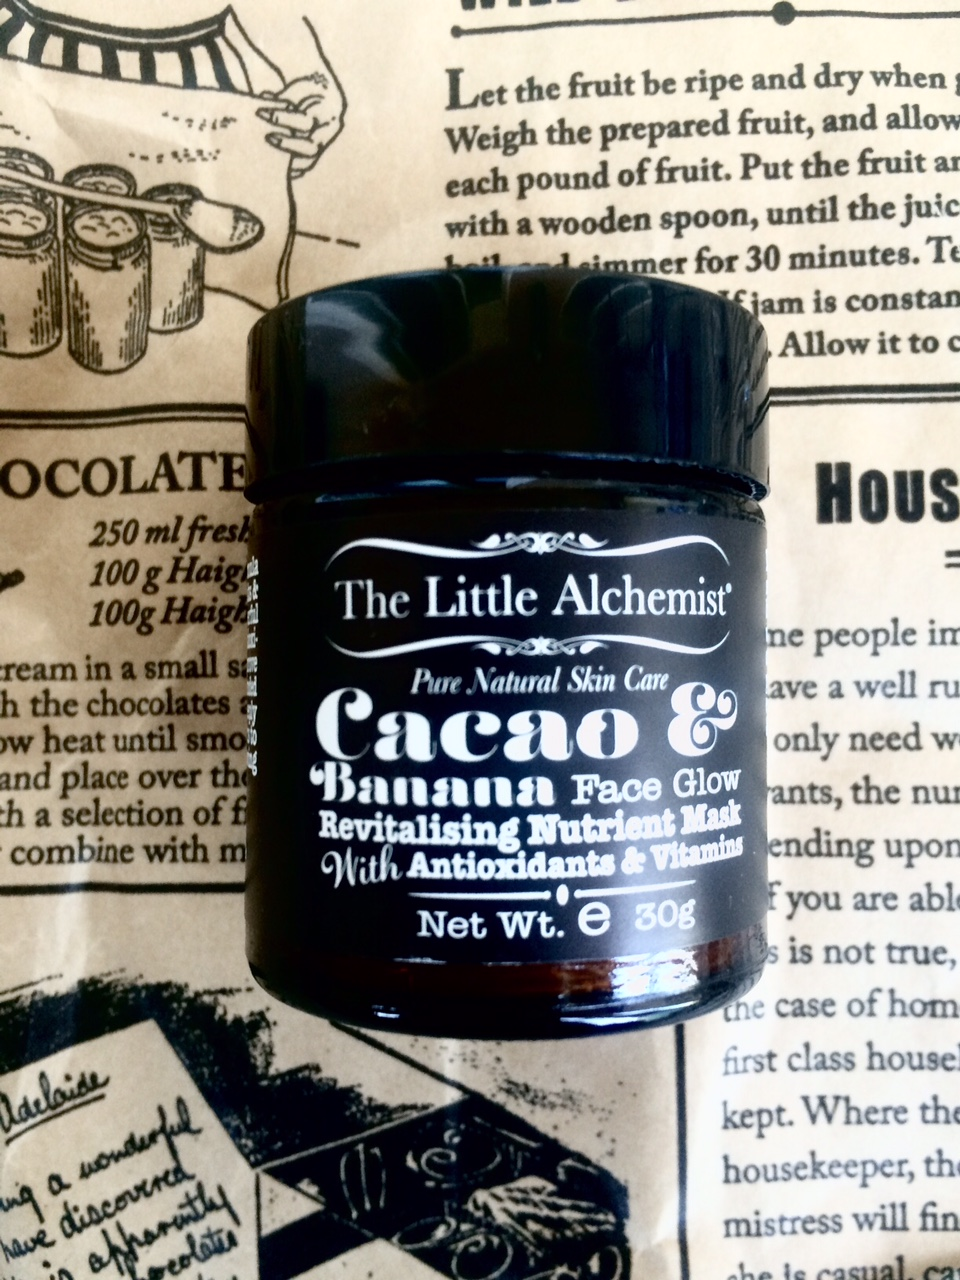 the little alchemist skincare review storybook apothecary the little alchemist skincare review